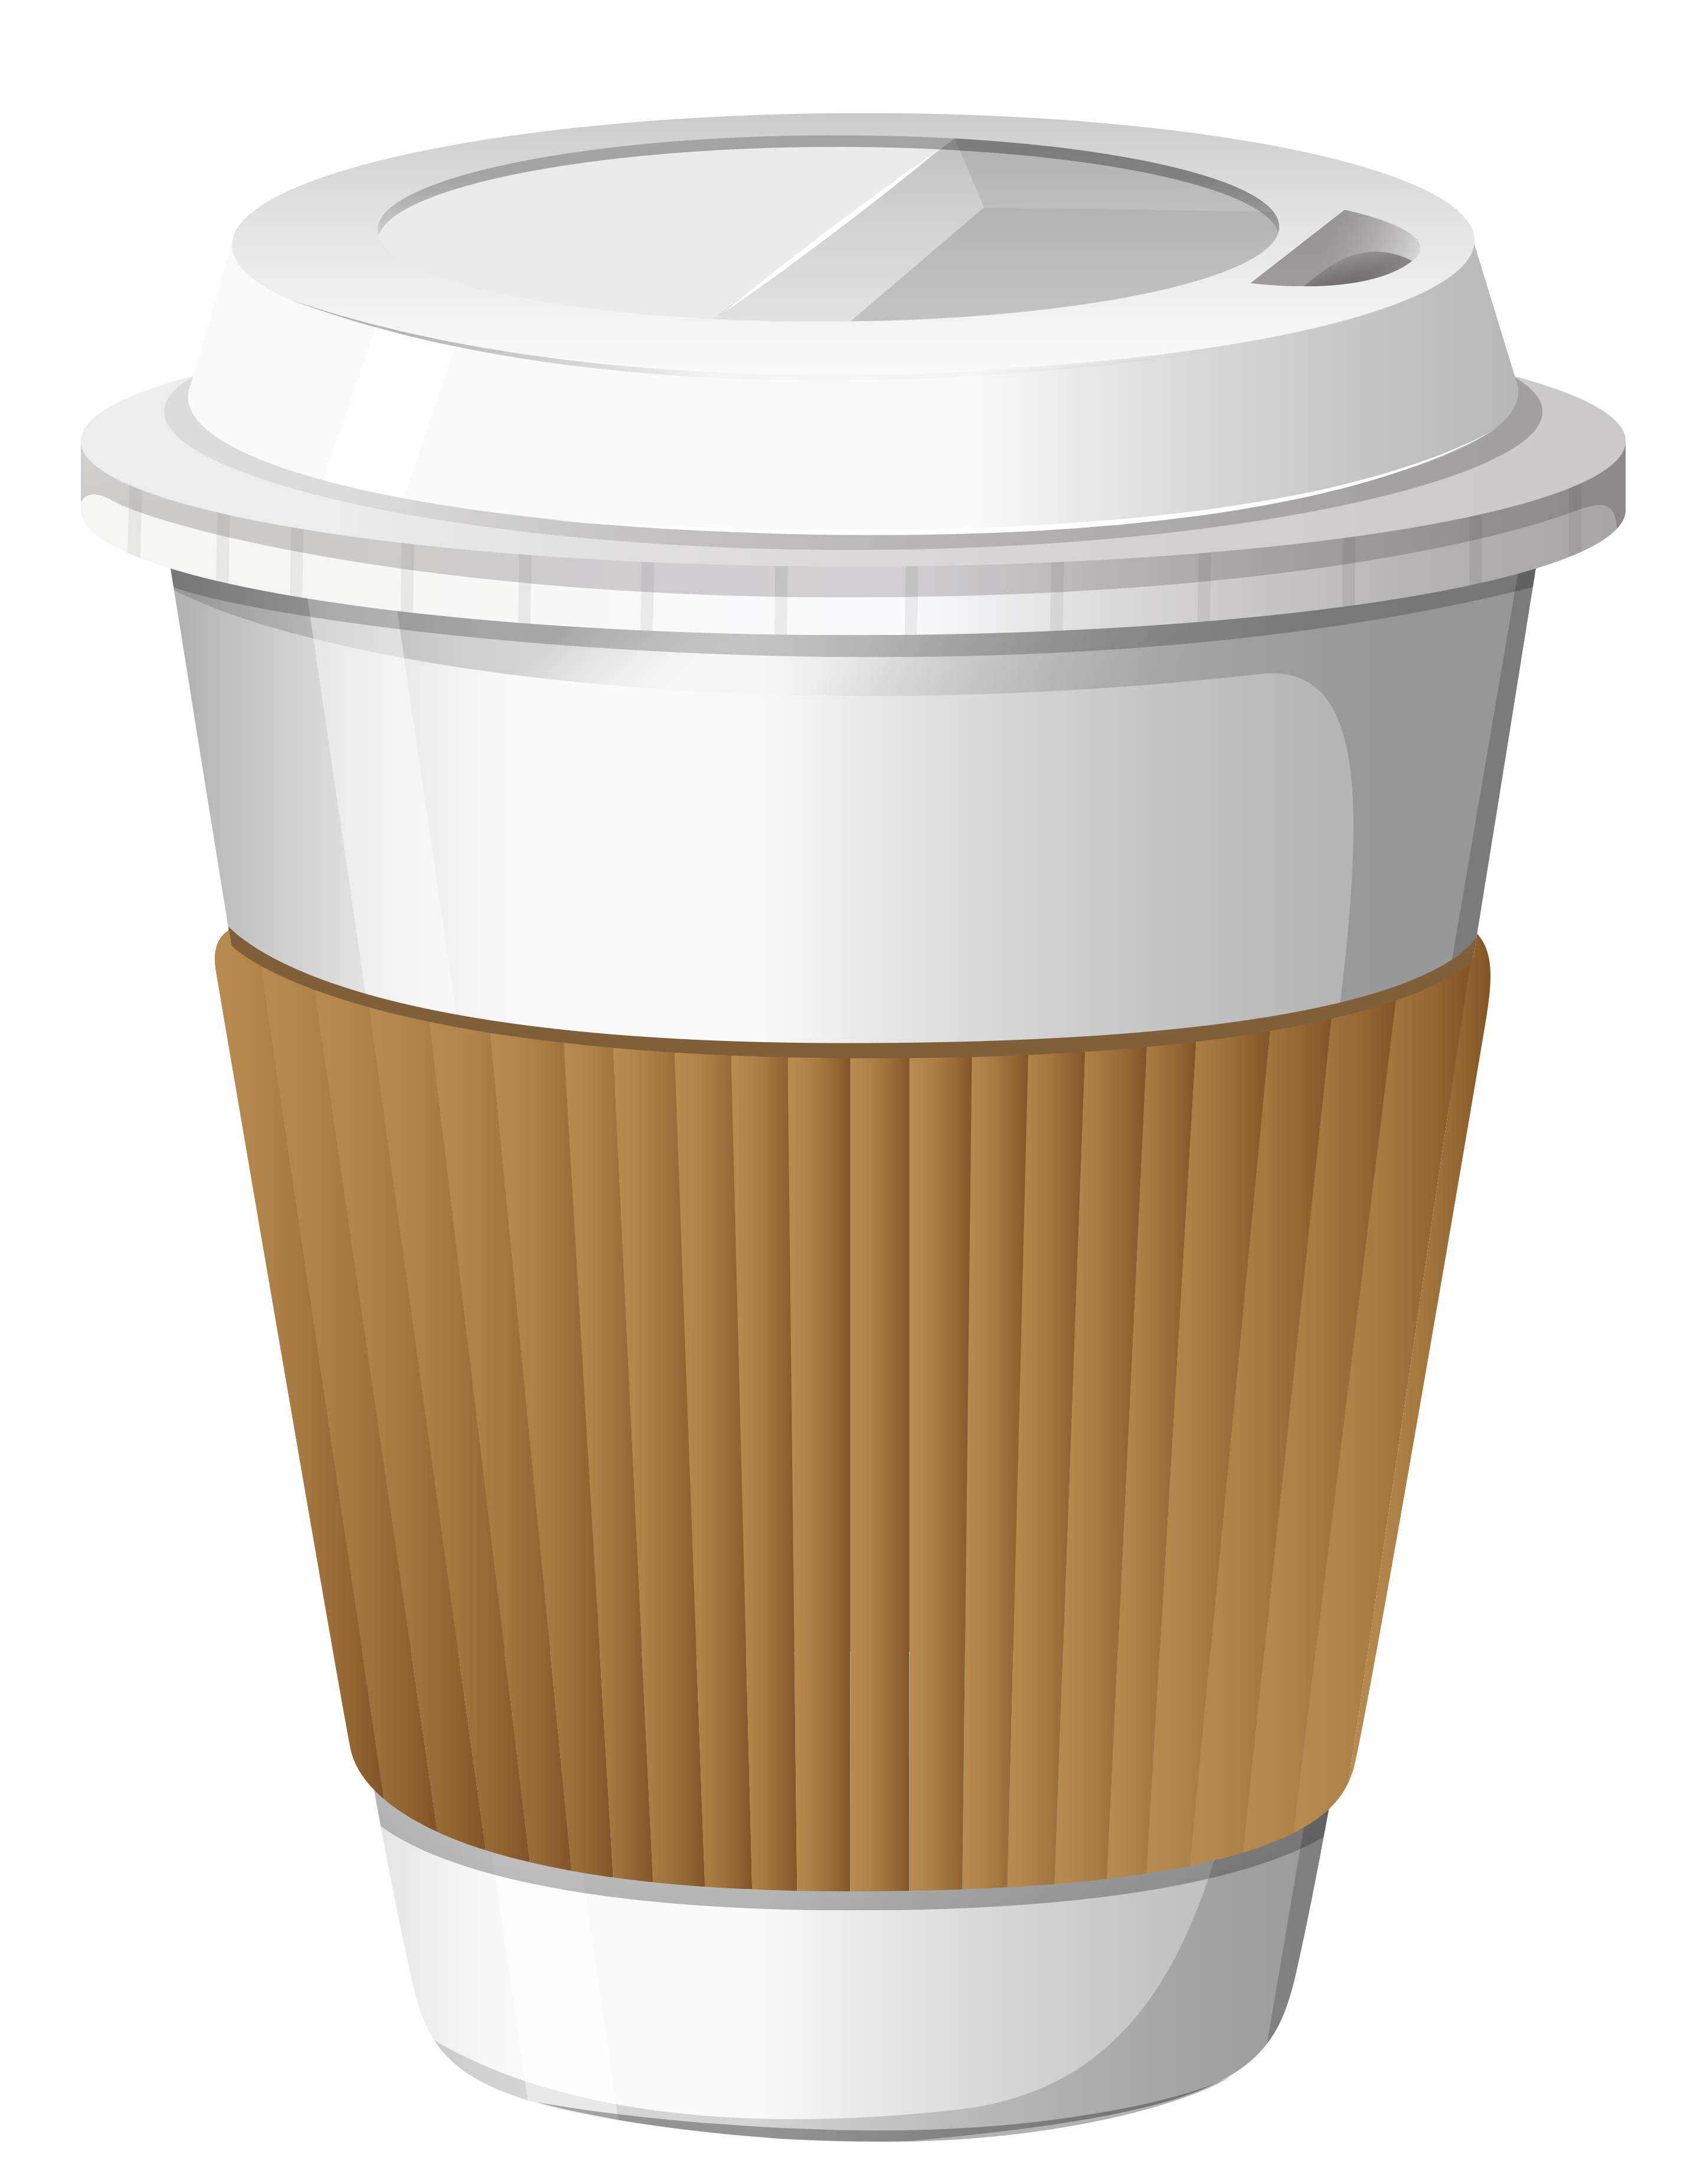 Clipart coffee red. Cup png clipar picture